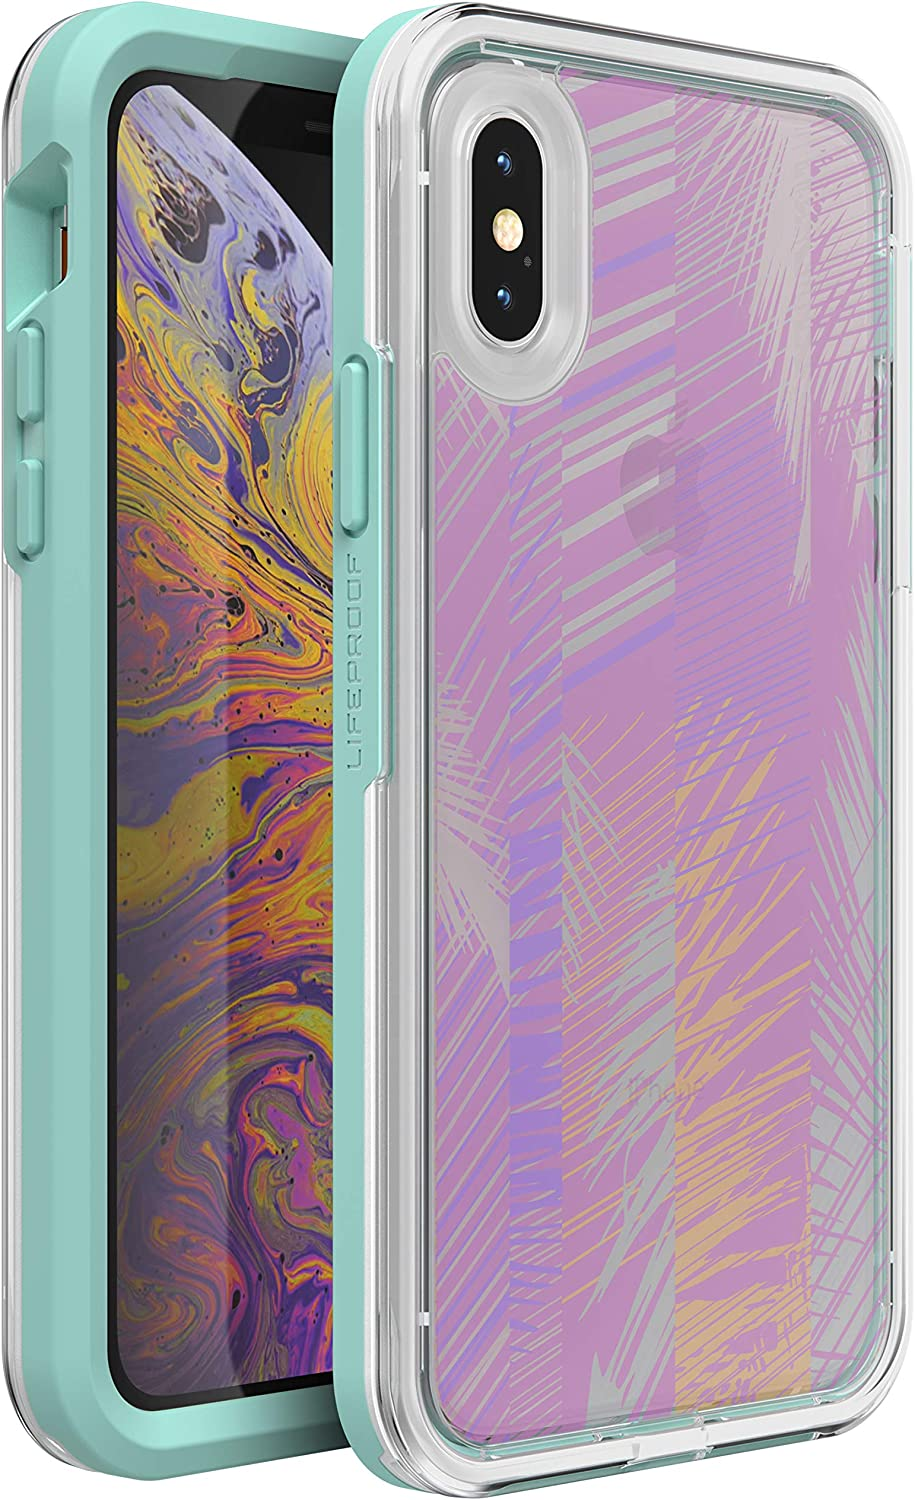 LifeProof SLAM Series Case for iPhone XR - Retail Packaging - Palm Daze